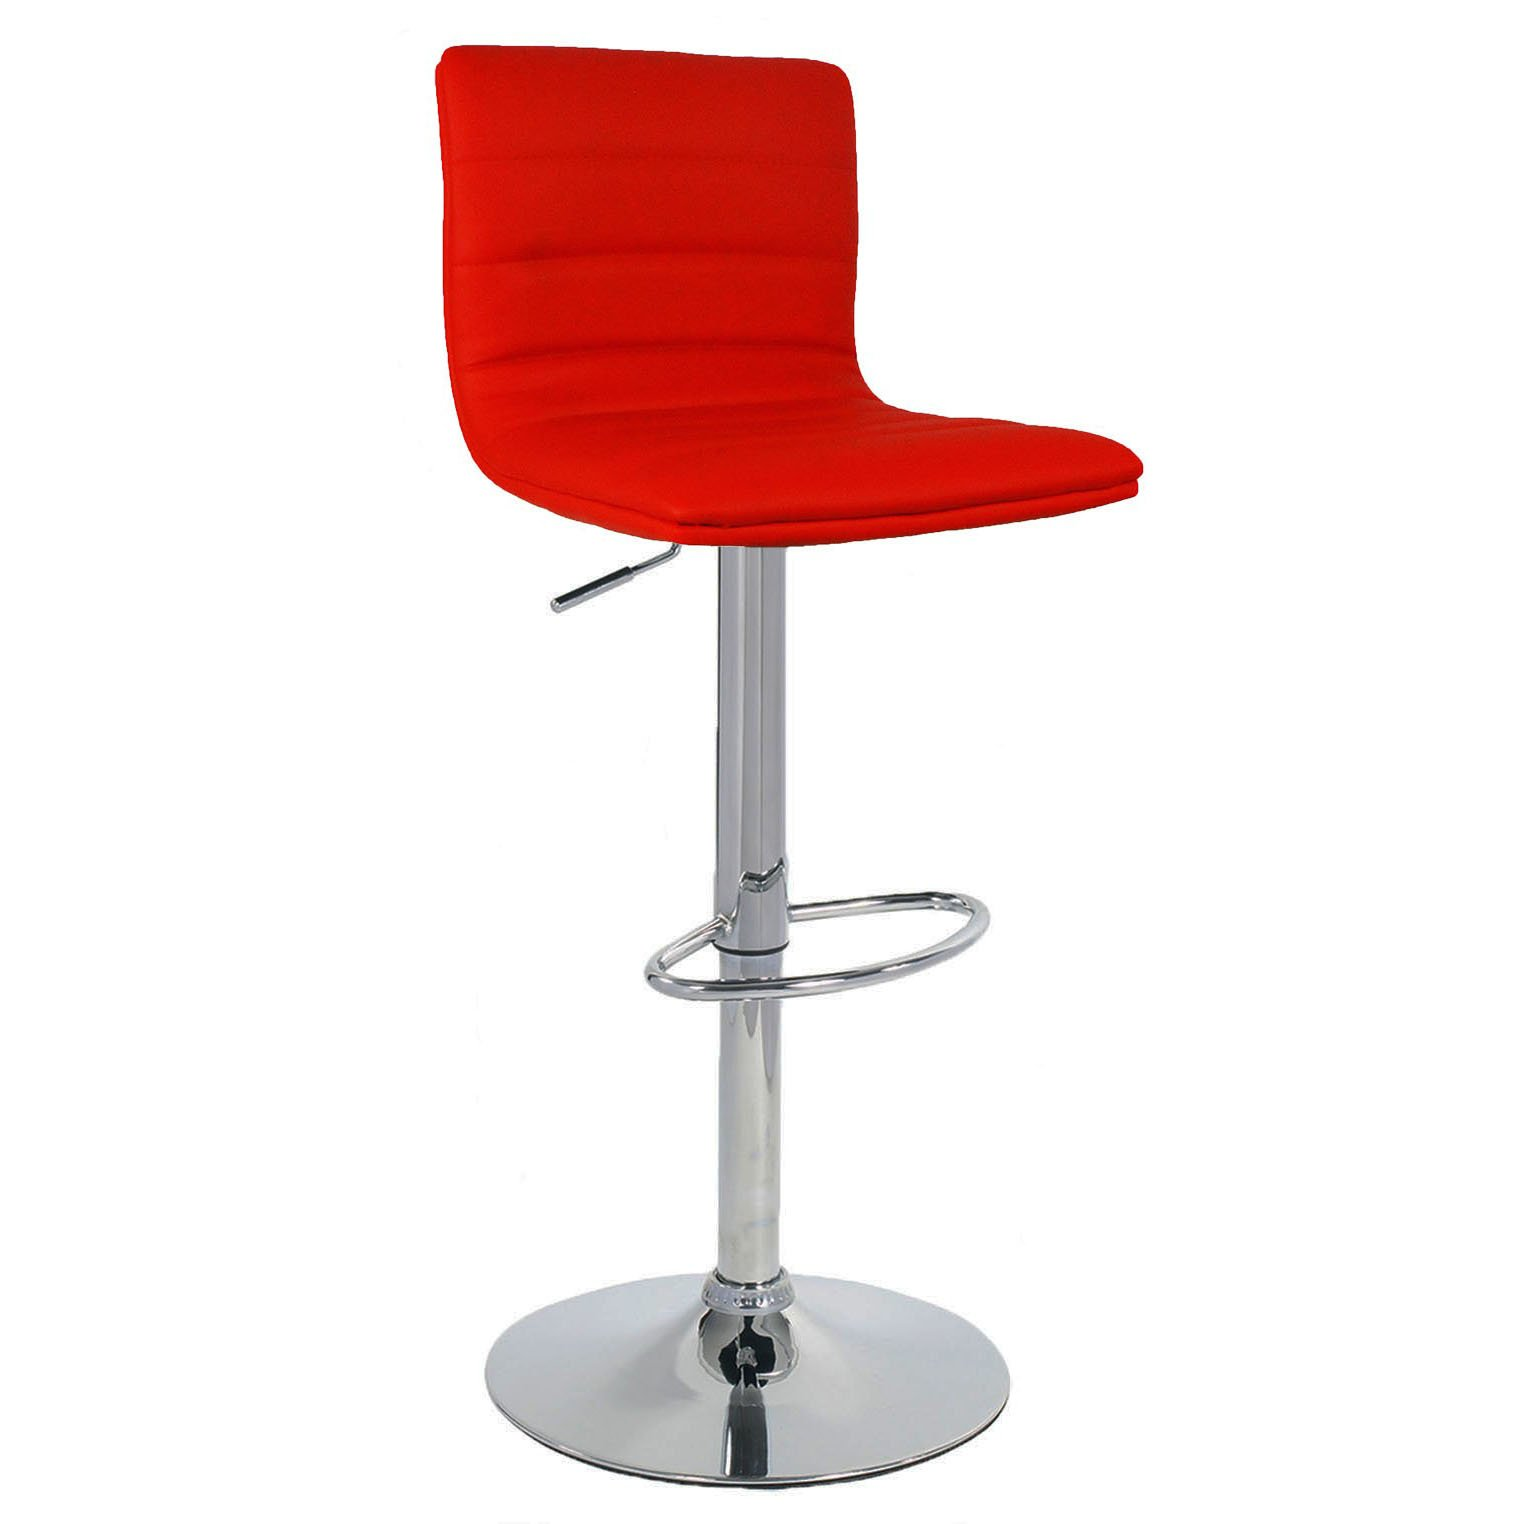 Aldo Bar Stool - Red